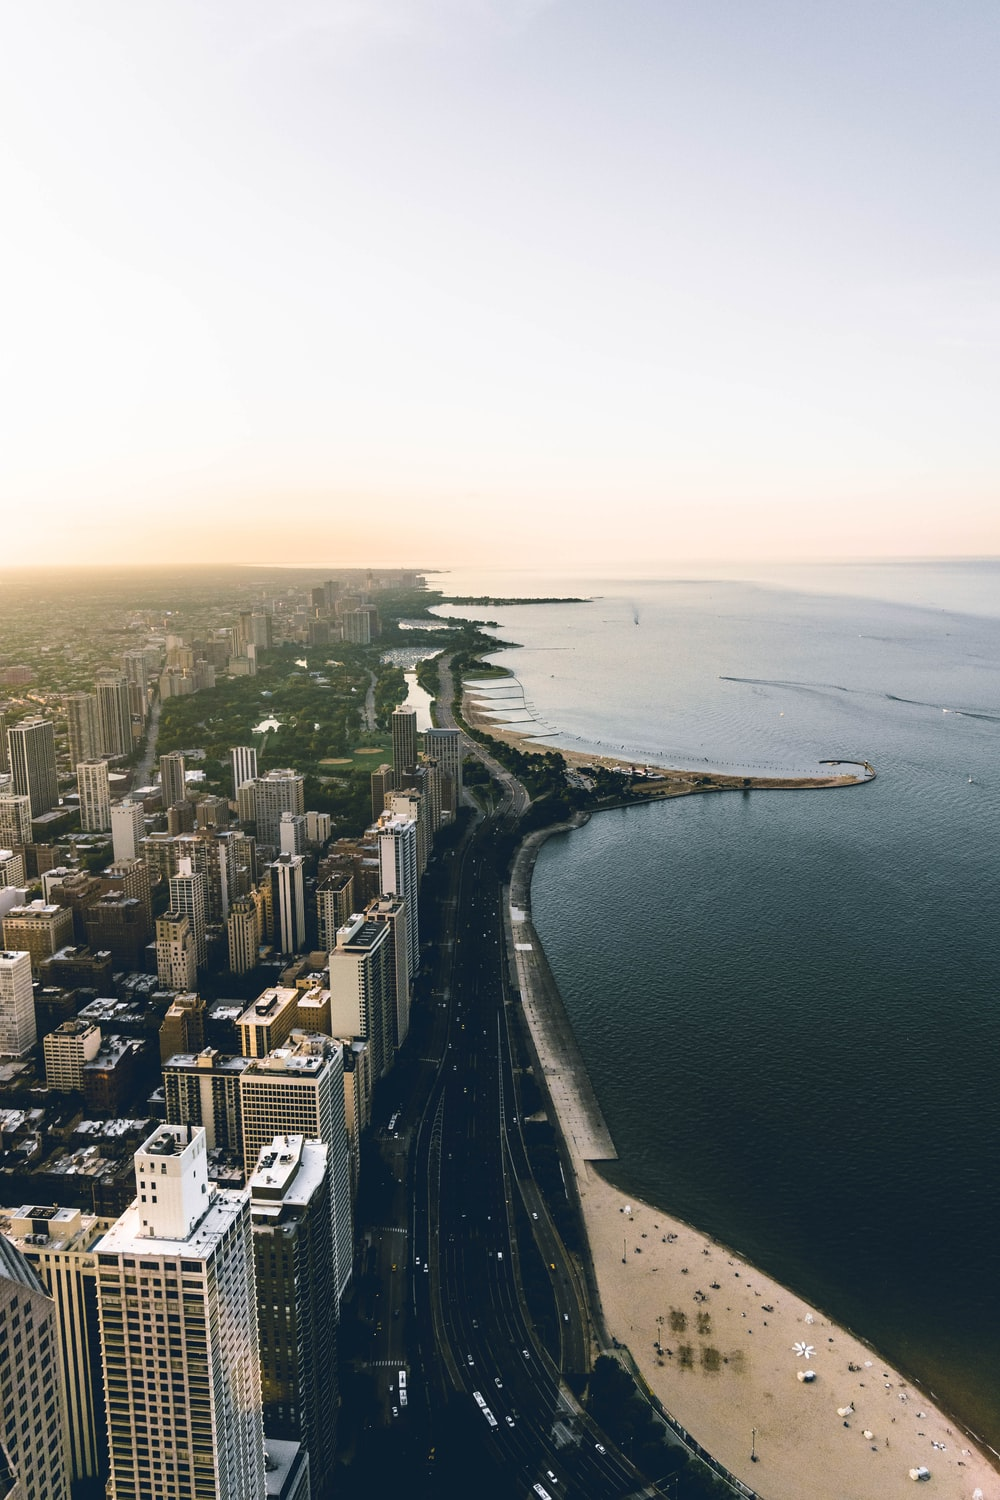 aerial photography of city beside body of water